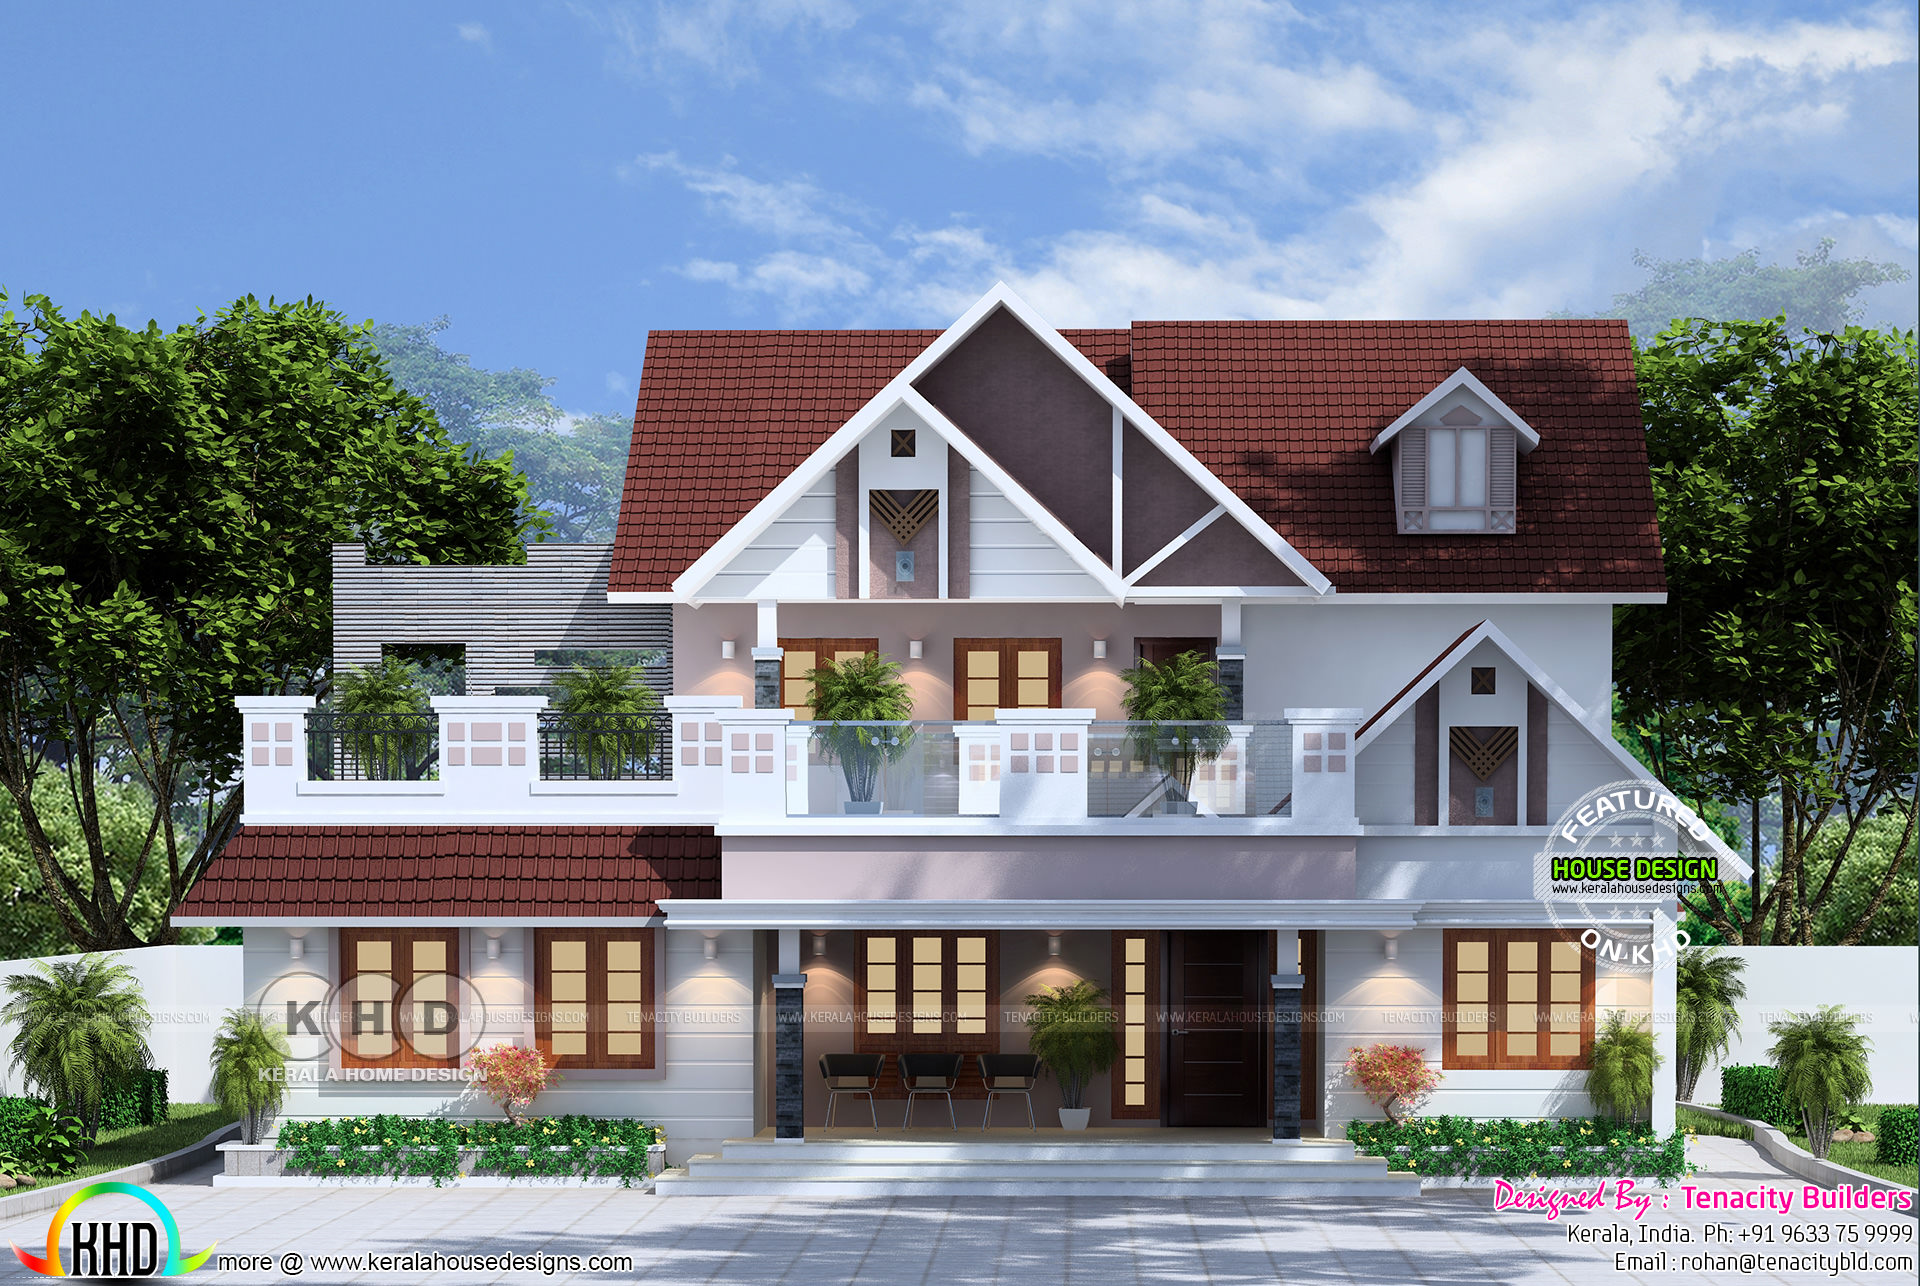 4 Bedroom Mixed Roof Home Part - 21: First Floor Area : 700 Square Feet. Total Area : 1900 Sq.ft. No. Of Bedrooms  : 4. Design Style : Modern Mixed Roof. House Location : Kalamassery, Kerala